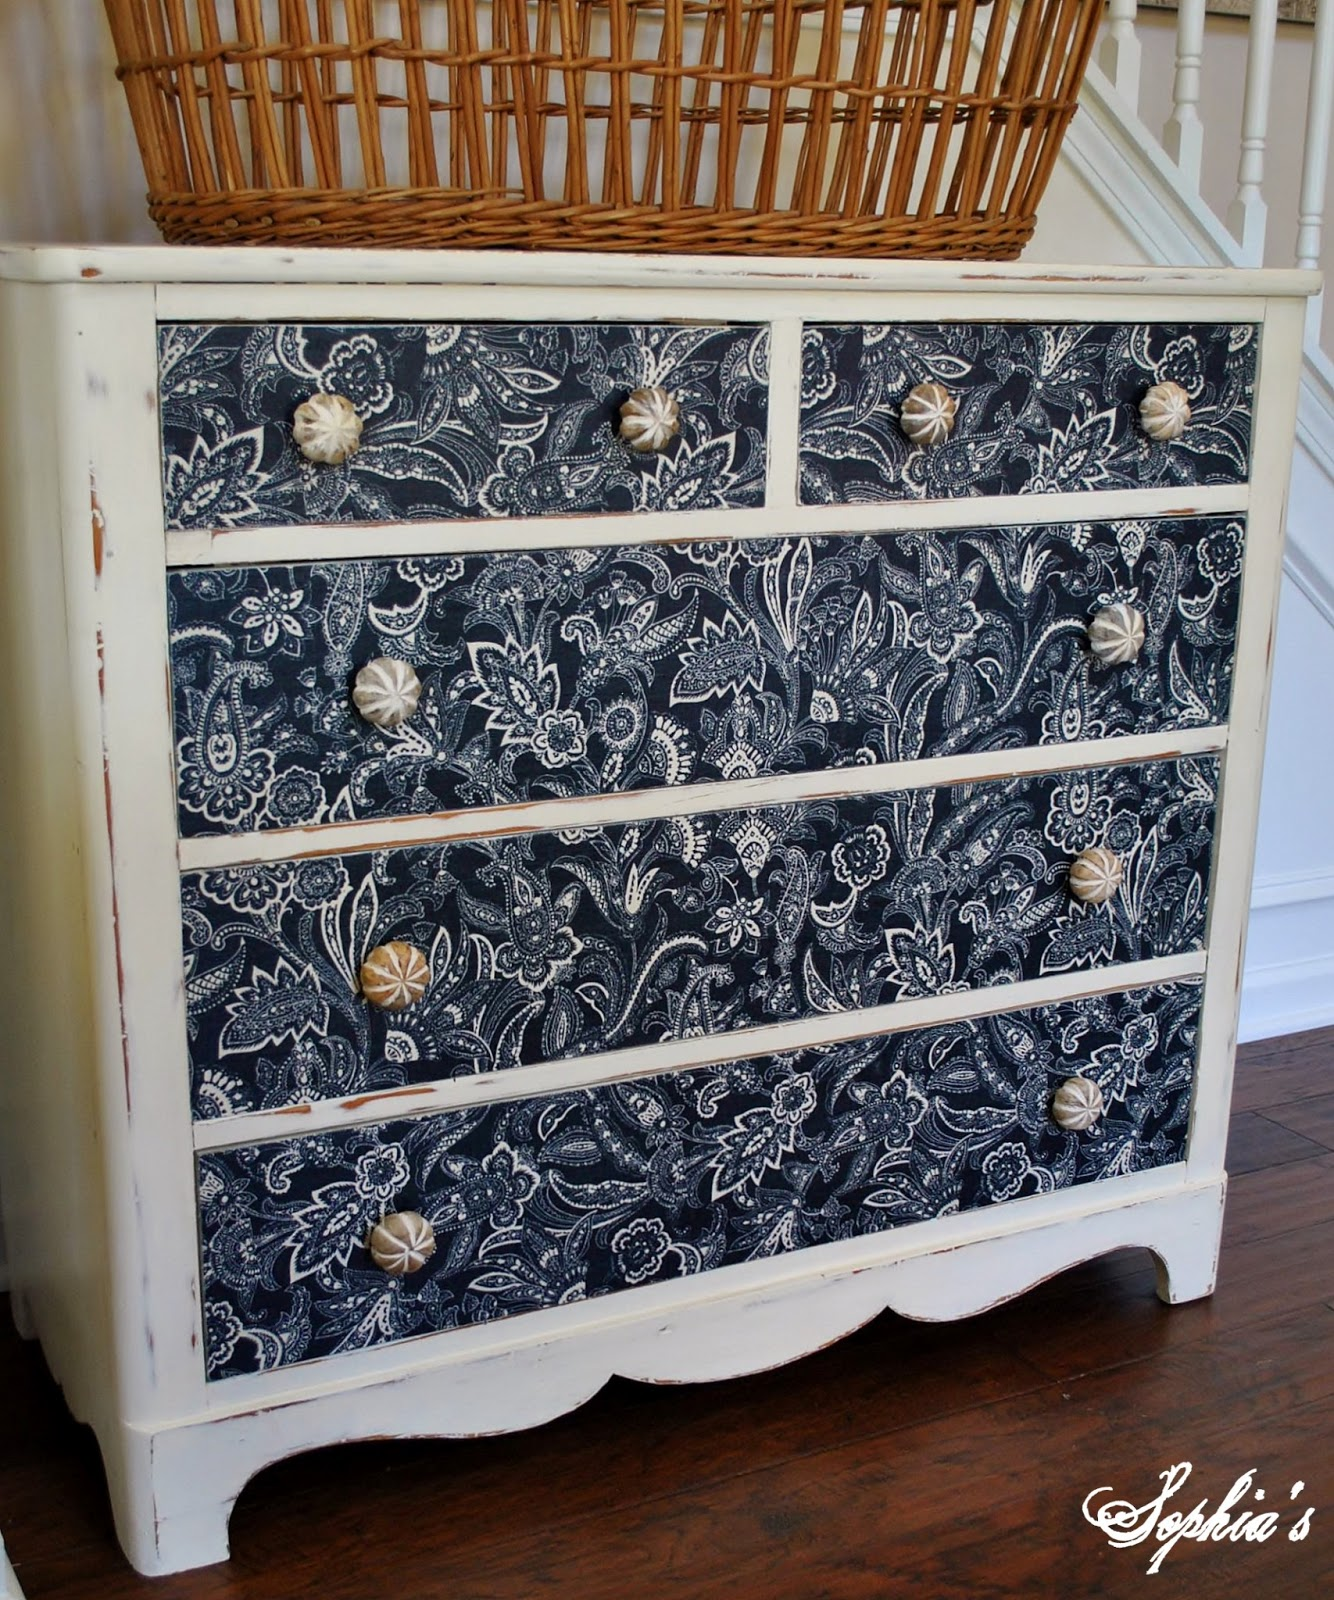 Sophia S Dresser Makeover With Fabric Cloth Cover Bestdressers 2017